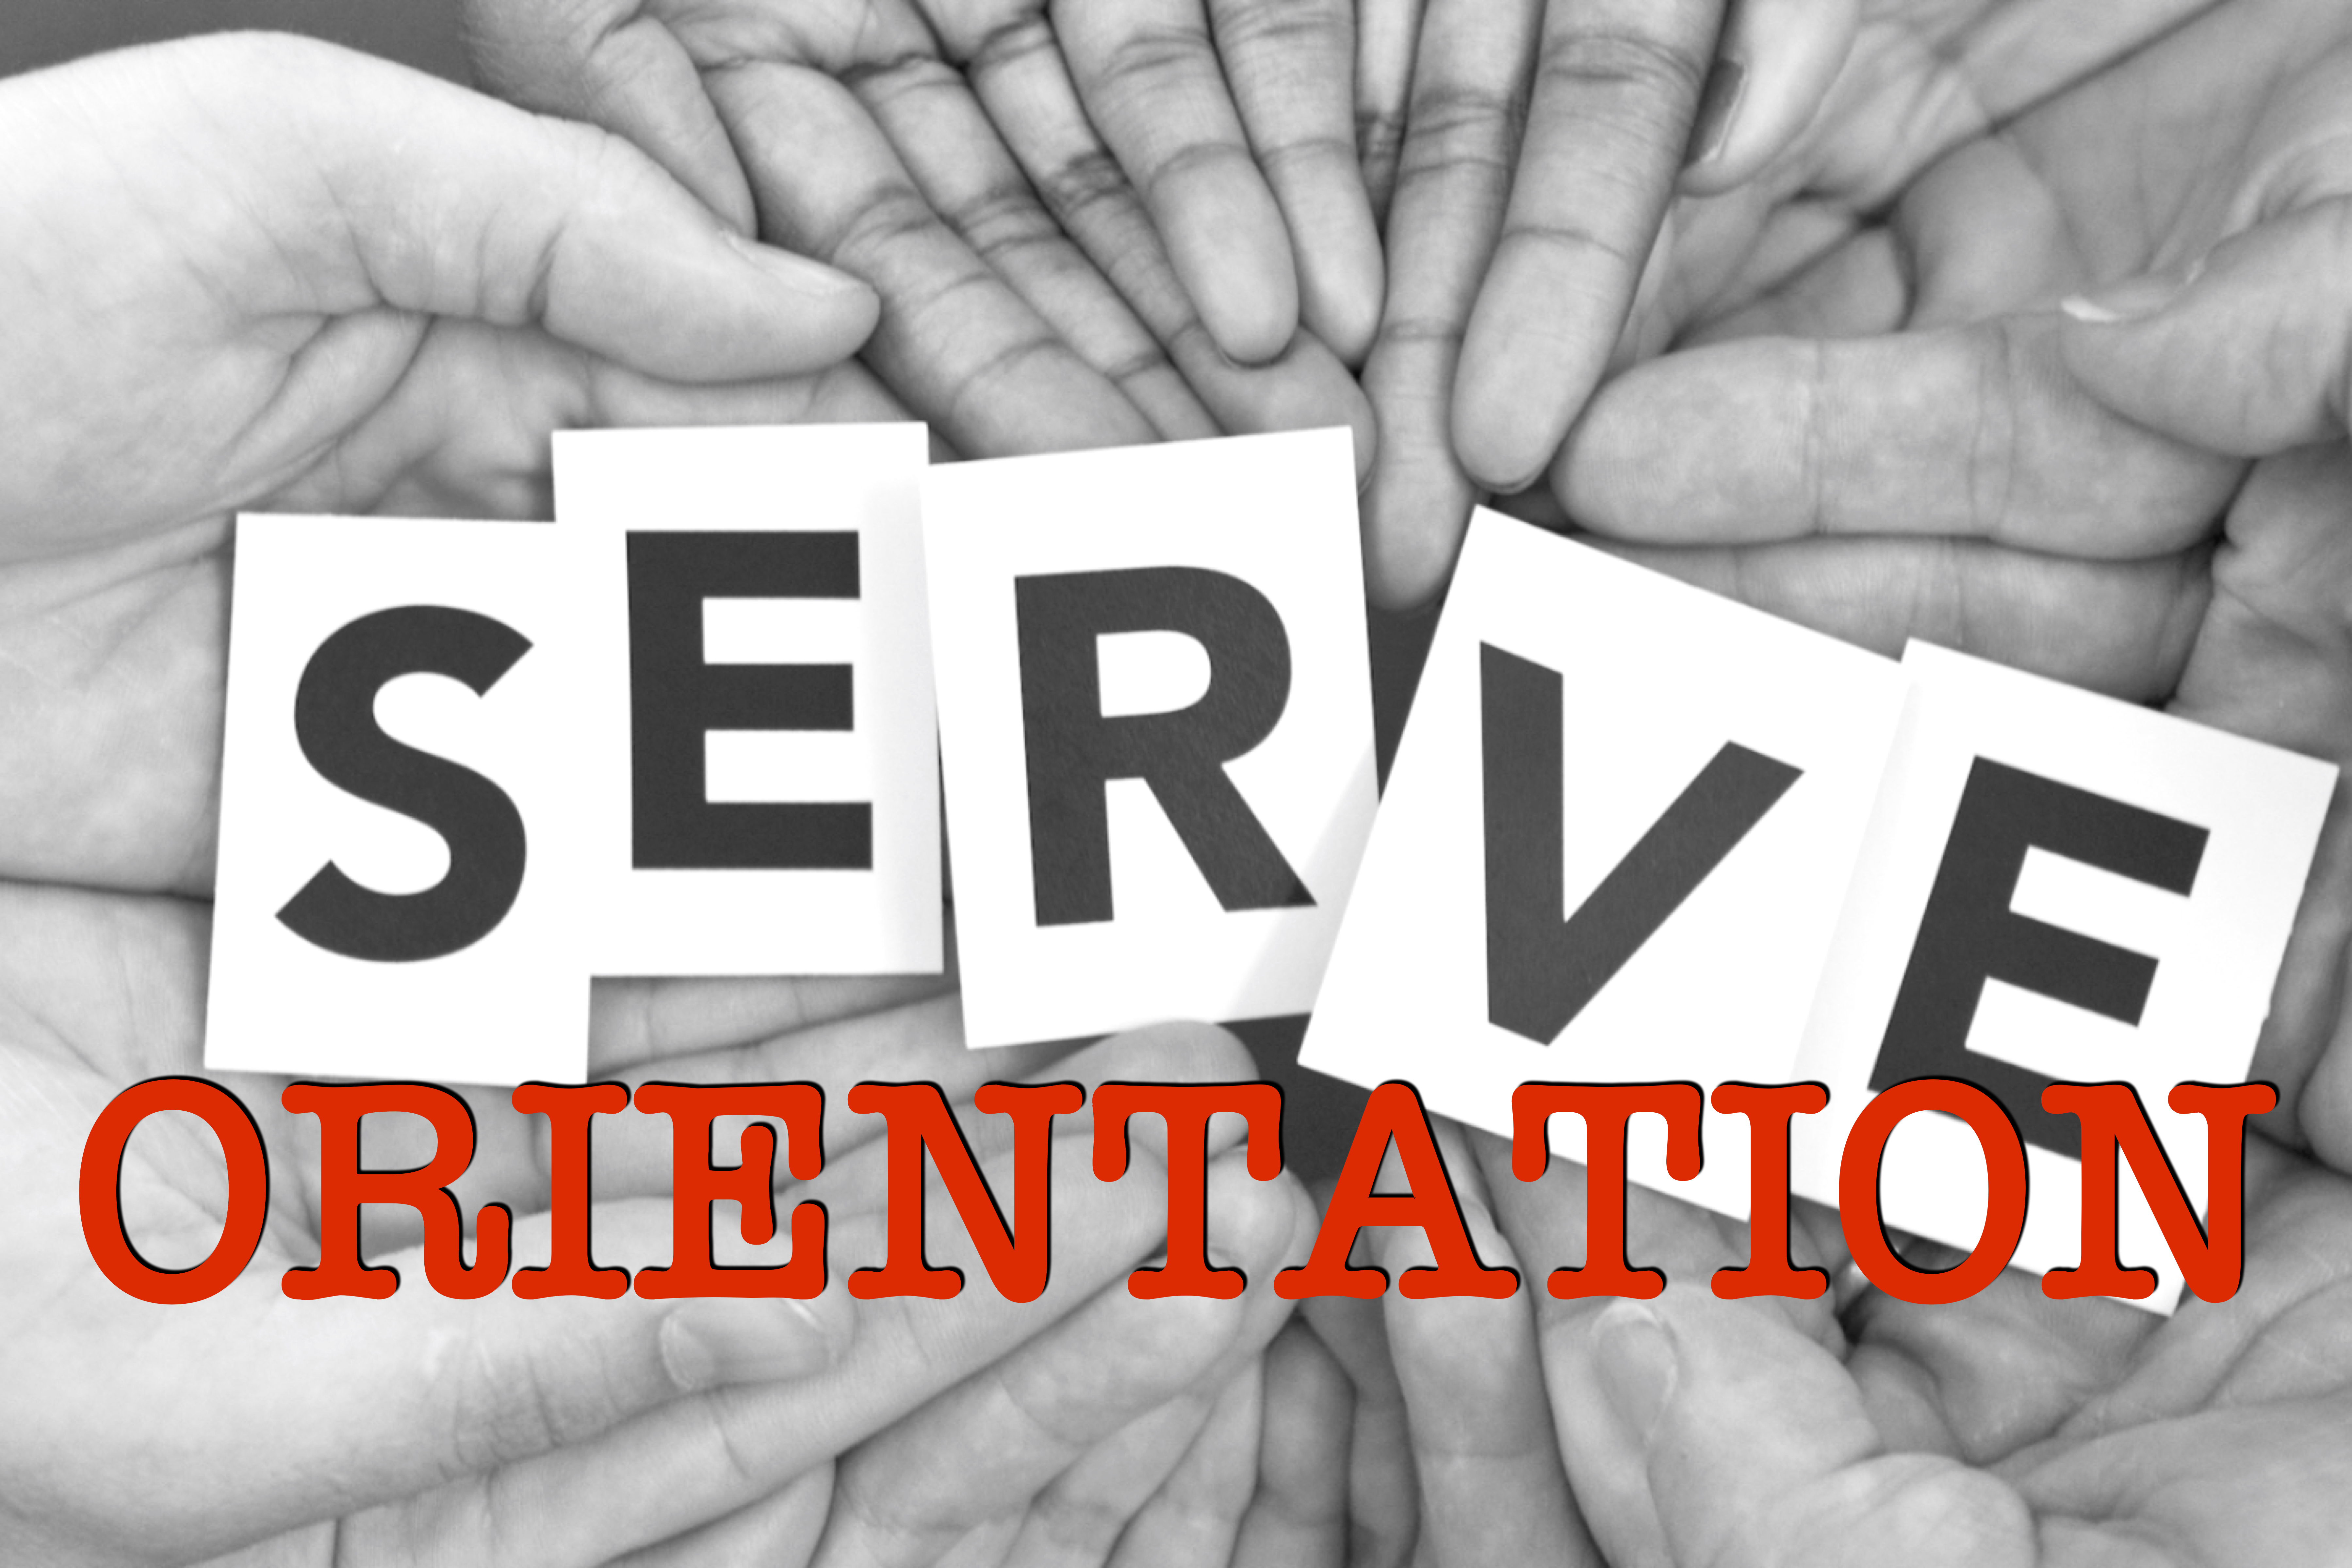 Serve orientation logo